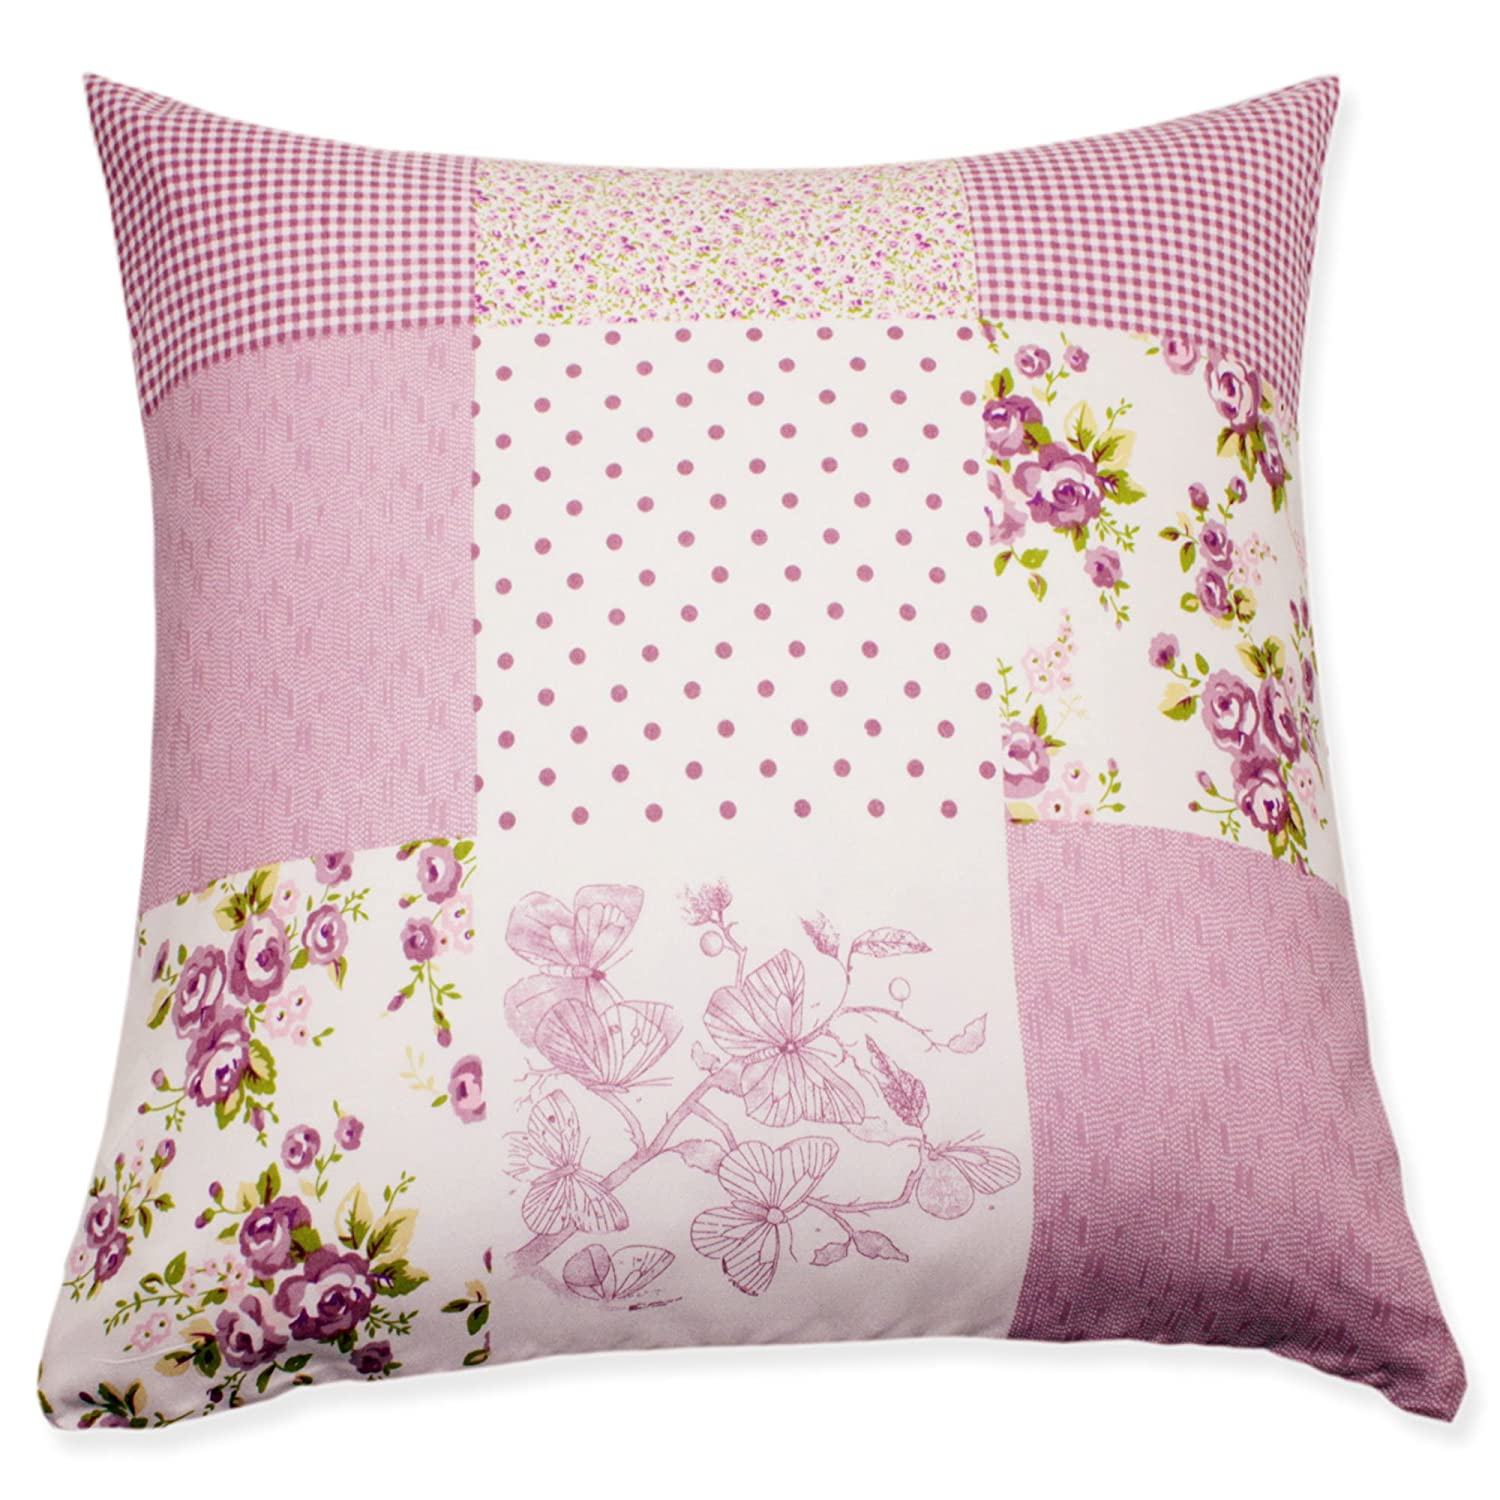 Decorative pillow, throw pillow, cushion cover patchwork floral lilac print reference #1661, Polyester, pink, 60 x 60 Haus und Deko